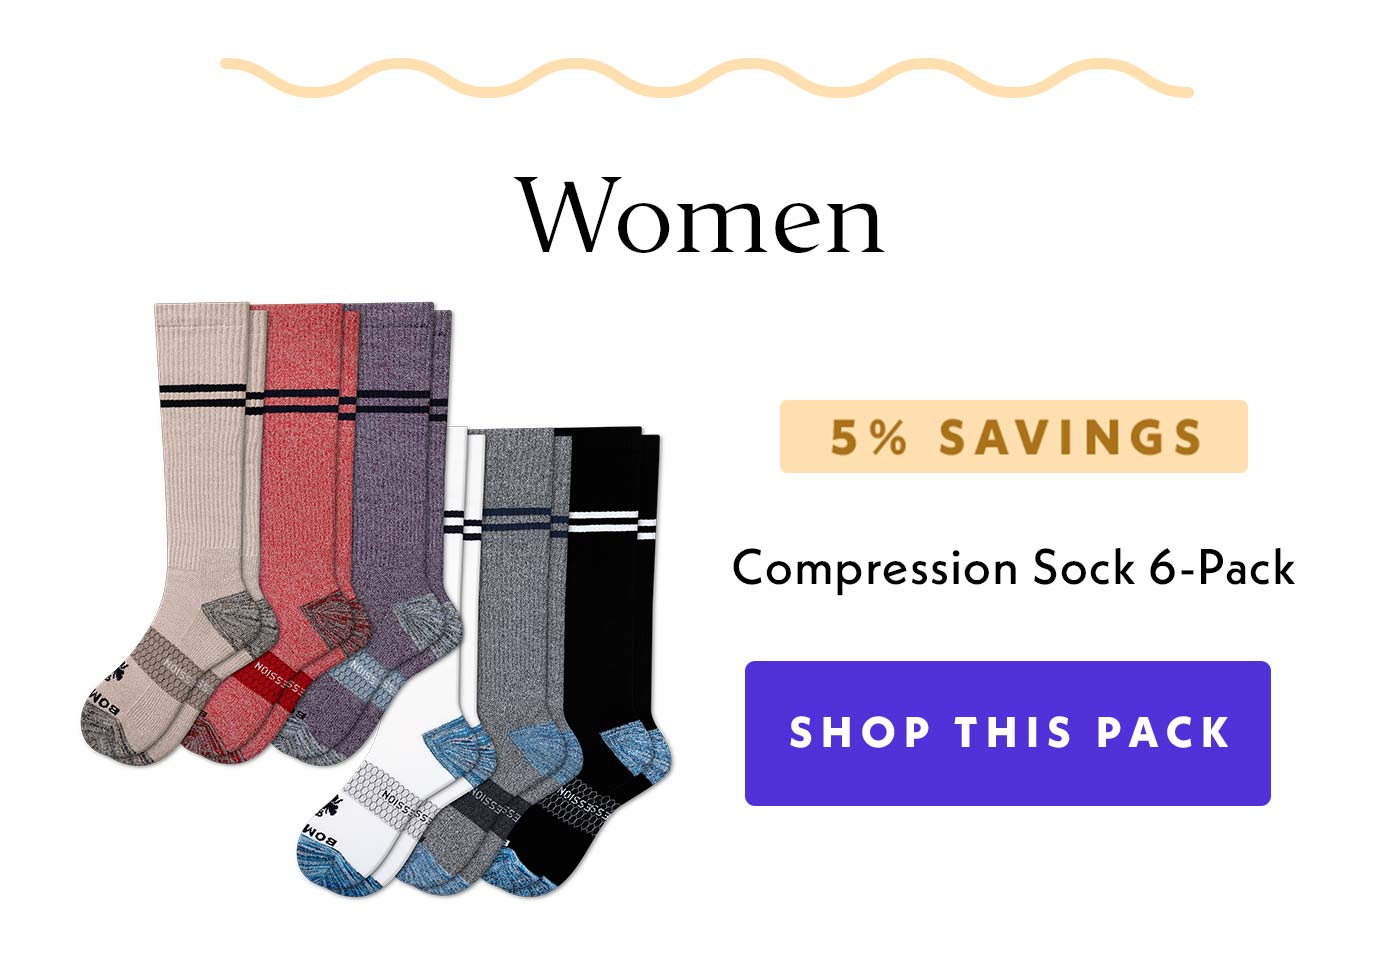 Women | 5% Savings | Compression Sock 6-Pack | Shop This Pack